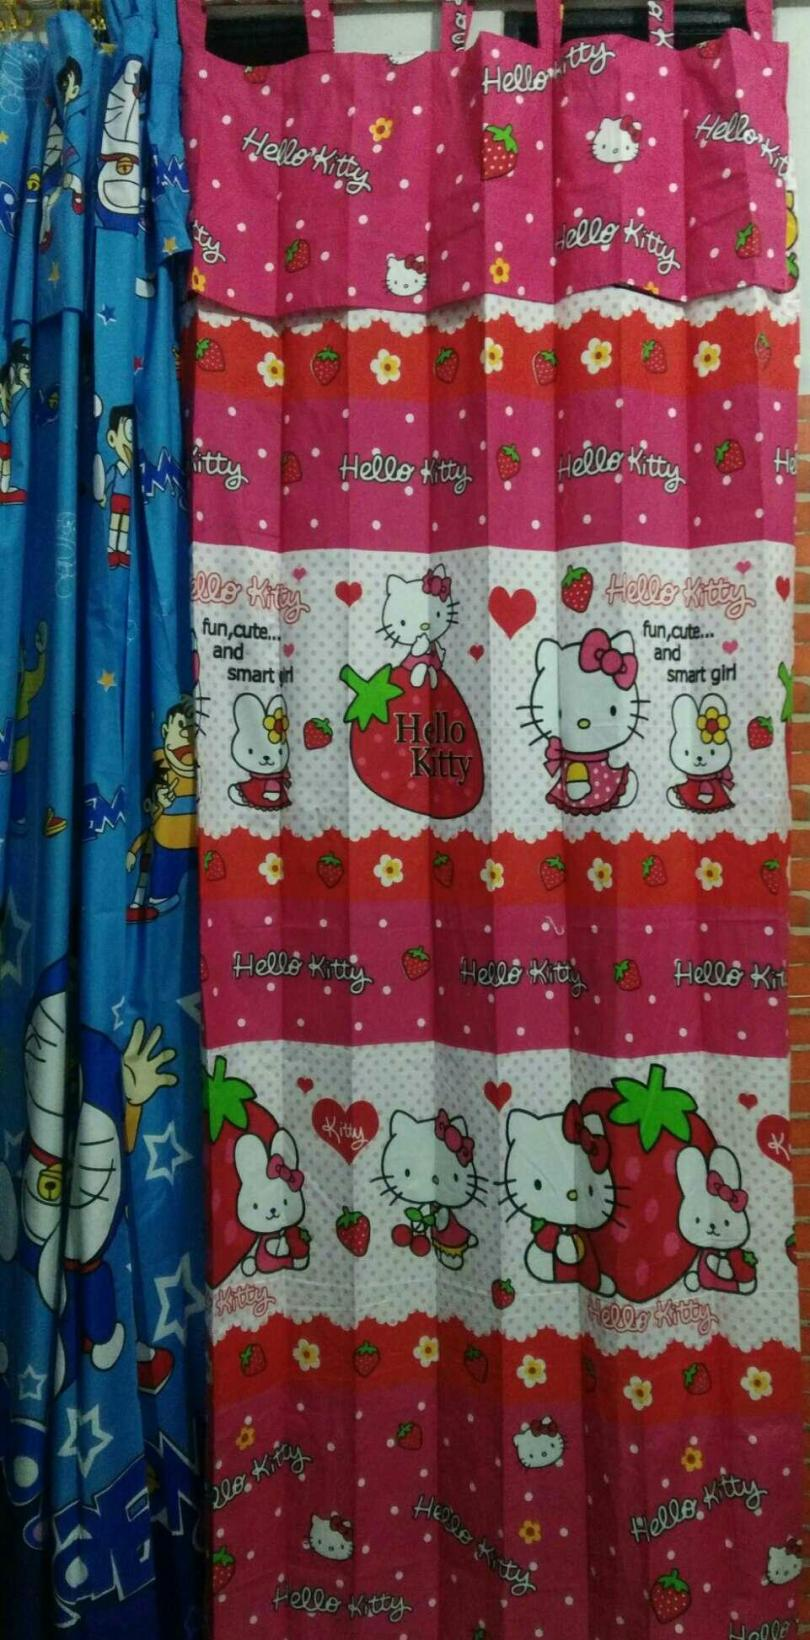 Gorden Pintu Jendela Minimalis Karater Hello Kitty/Gordyn karakter/gorden motif Kartun Hello Kitty/Gorden Rumah/Hordeng Hello Kitty